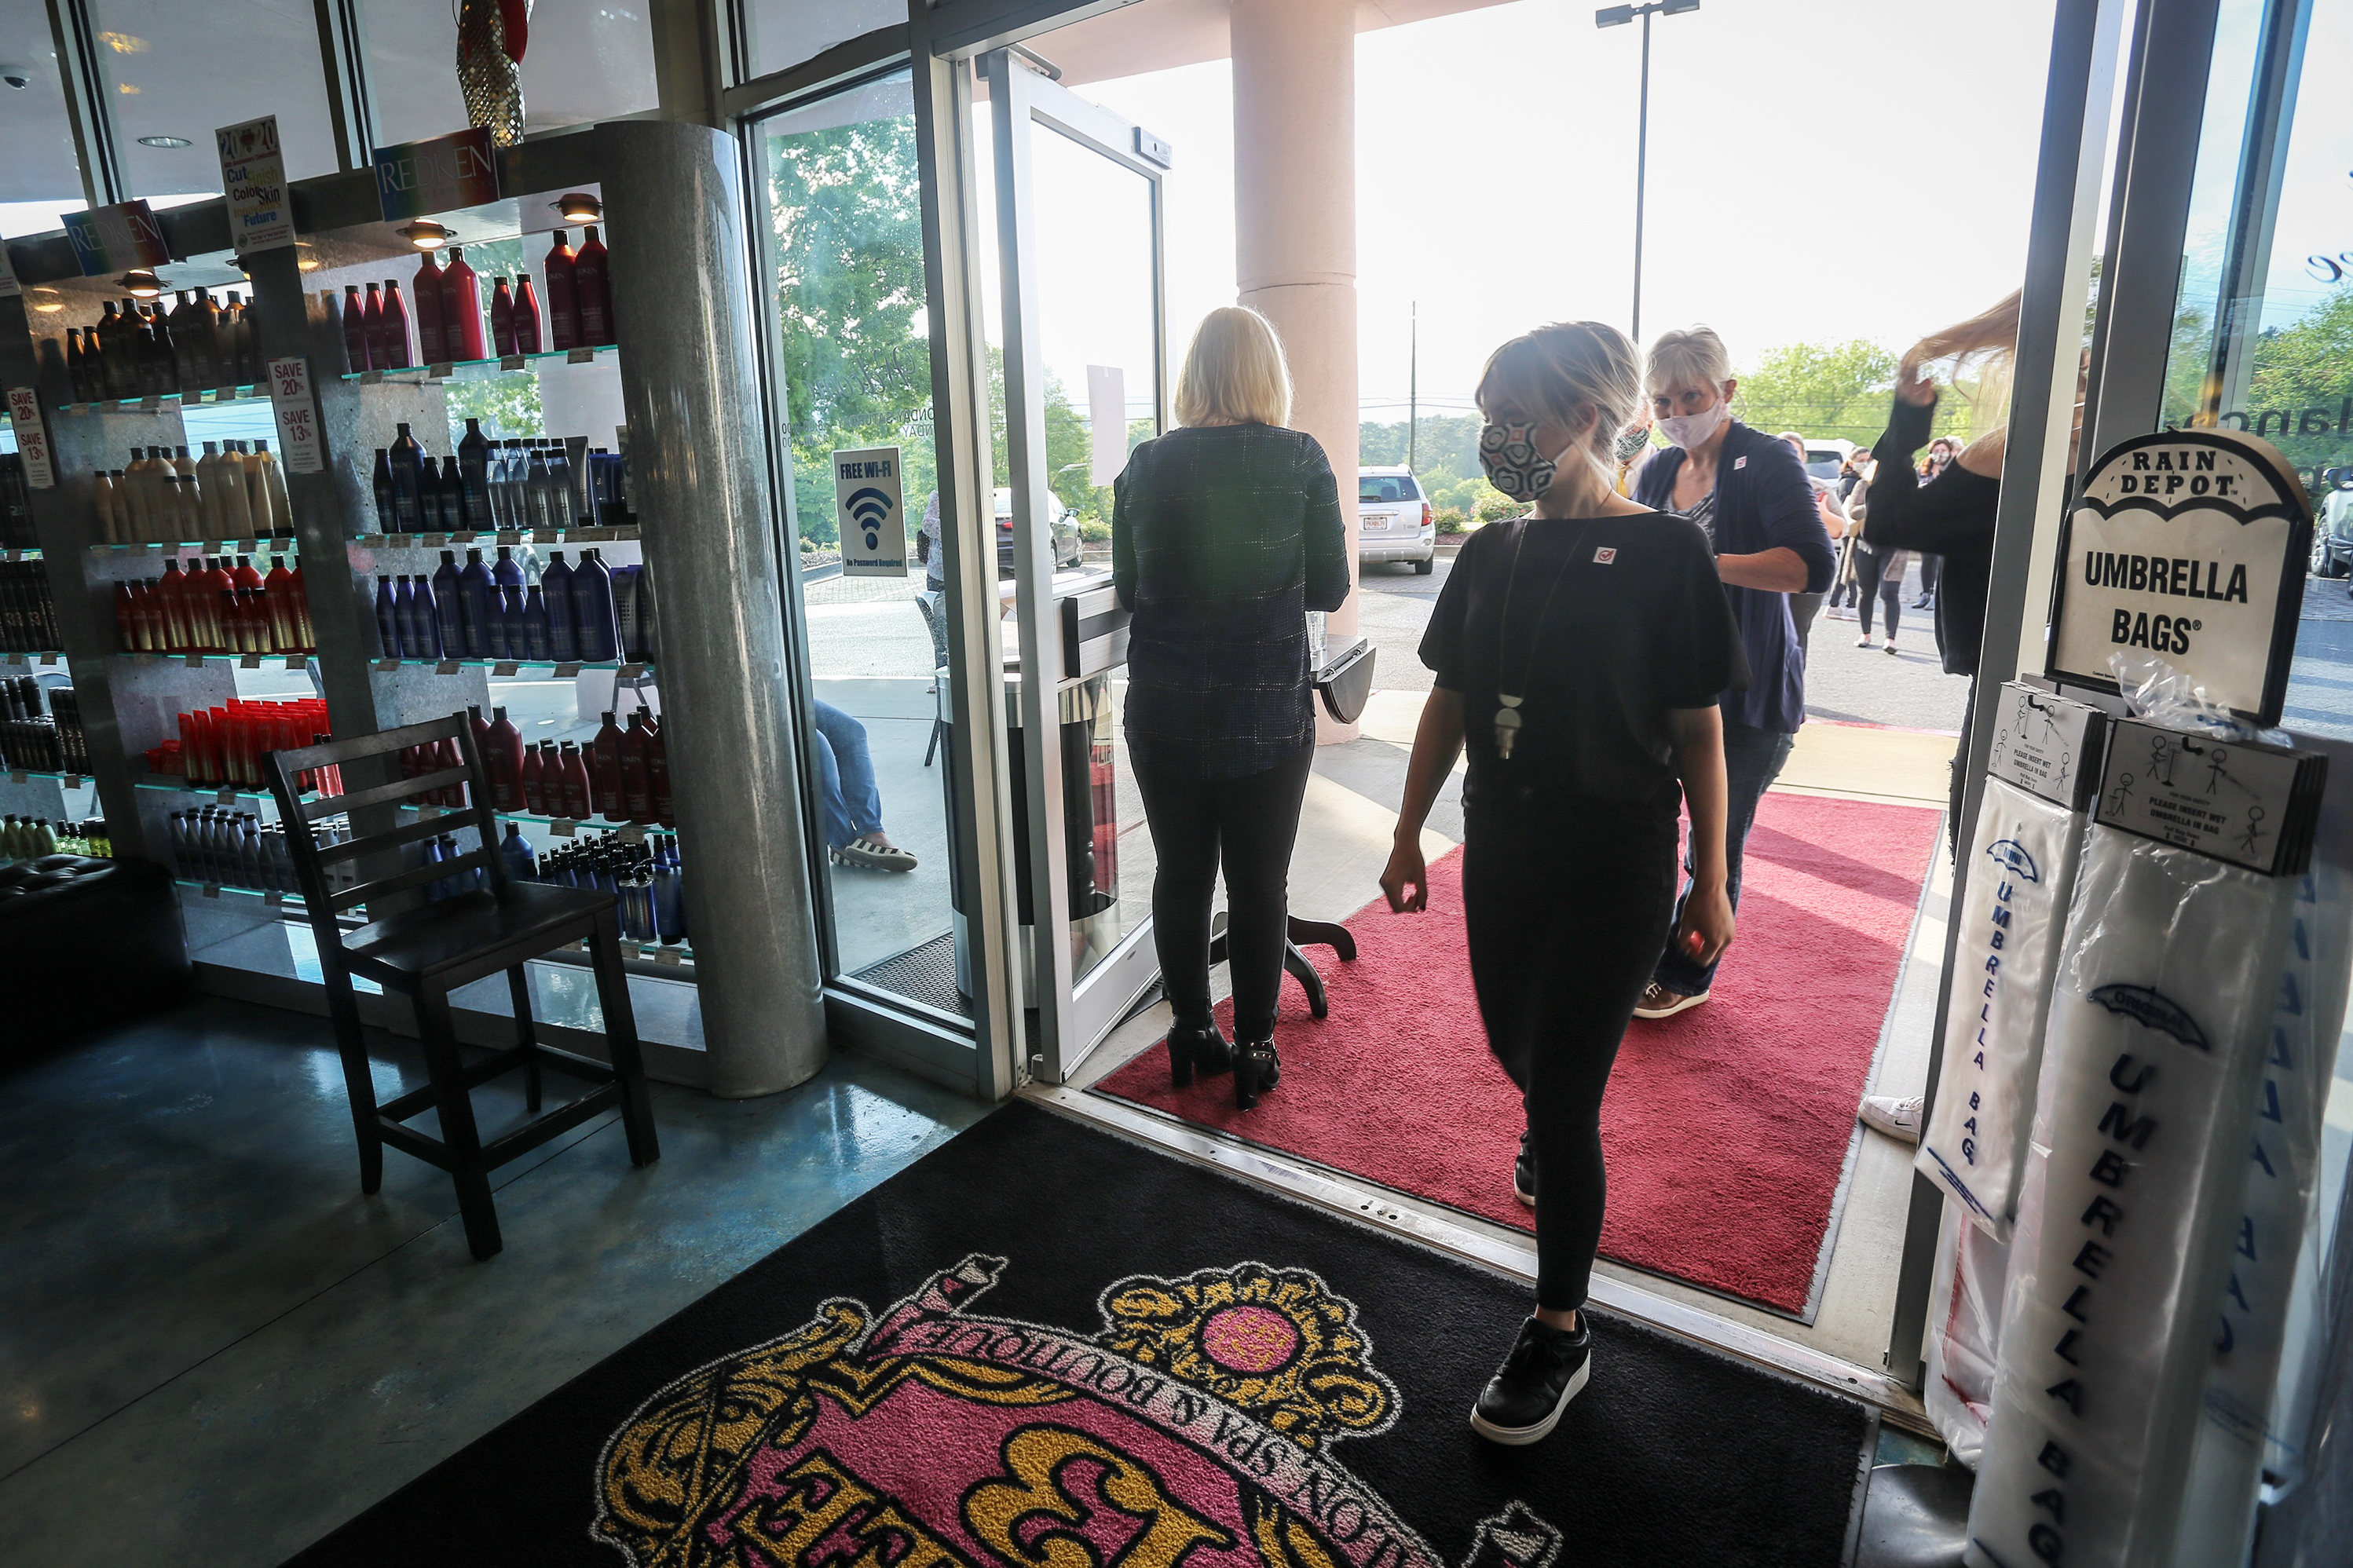 Employees and customers walk into Three-13 Salon, Spa & Boutique in Marietta, Georgia, on April 24. The salon reopened on April 24 after having been closed for more than a month due to the novel coronavirus outbreak.